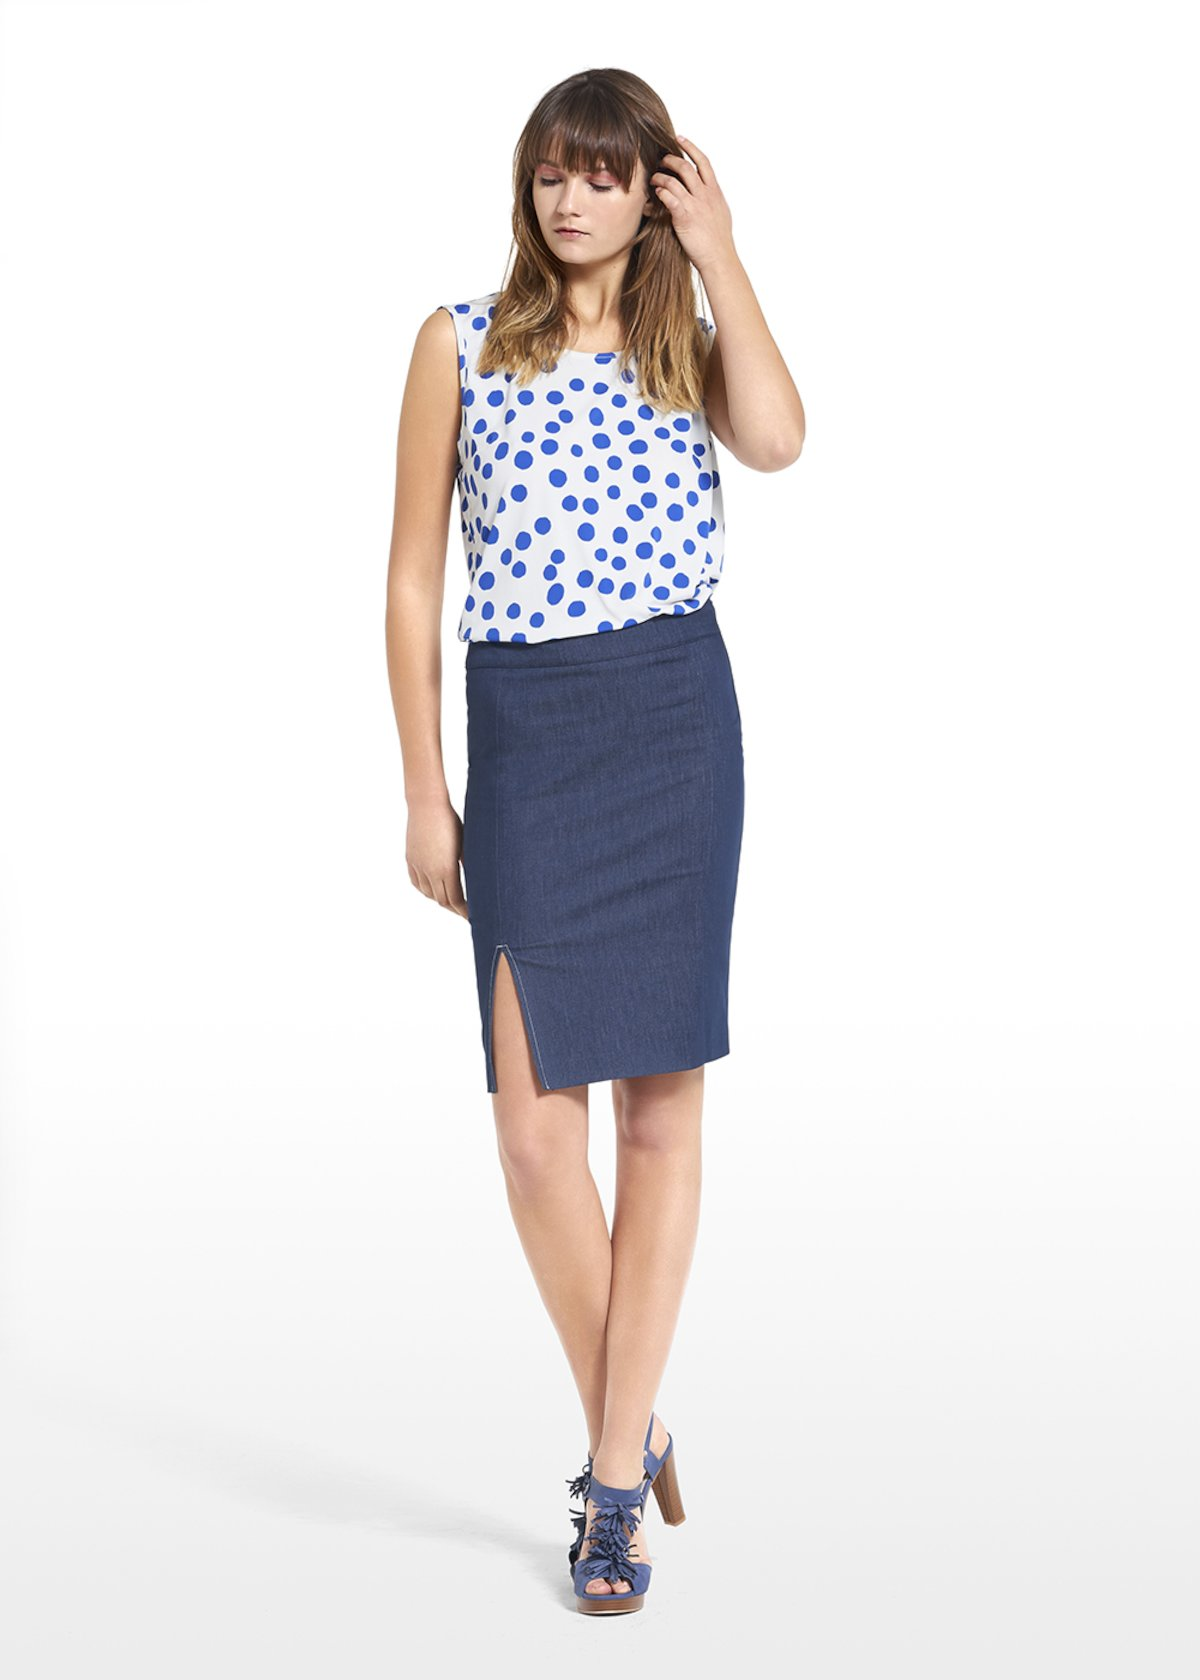 Patterned polka dot on white bottom top Tailor - White / Mineral Pois - Woman - Category image